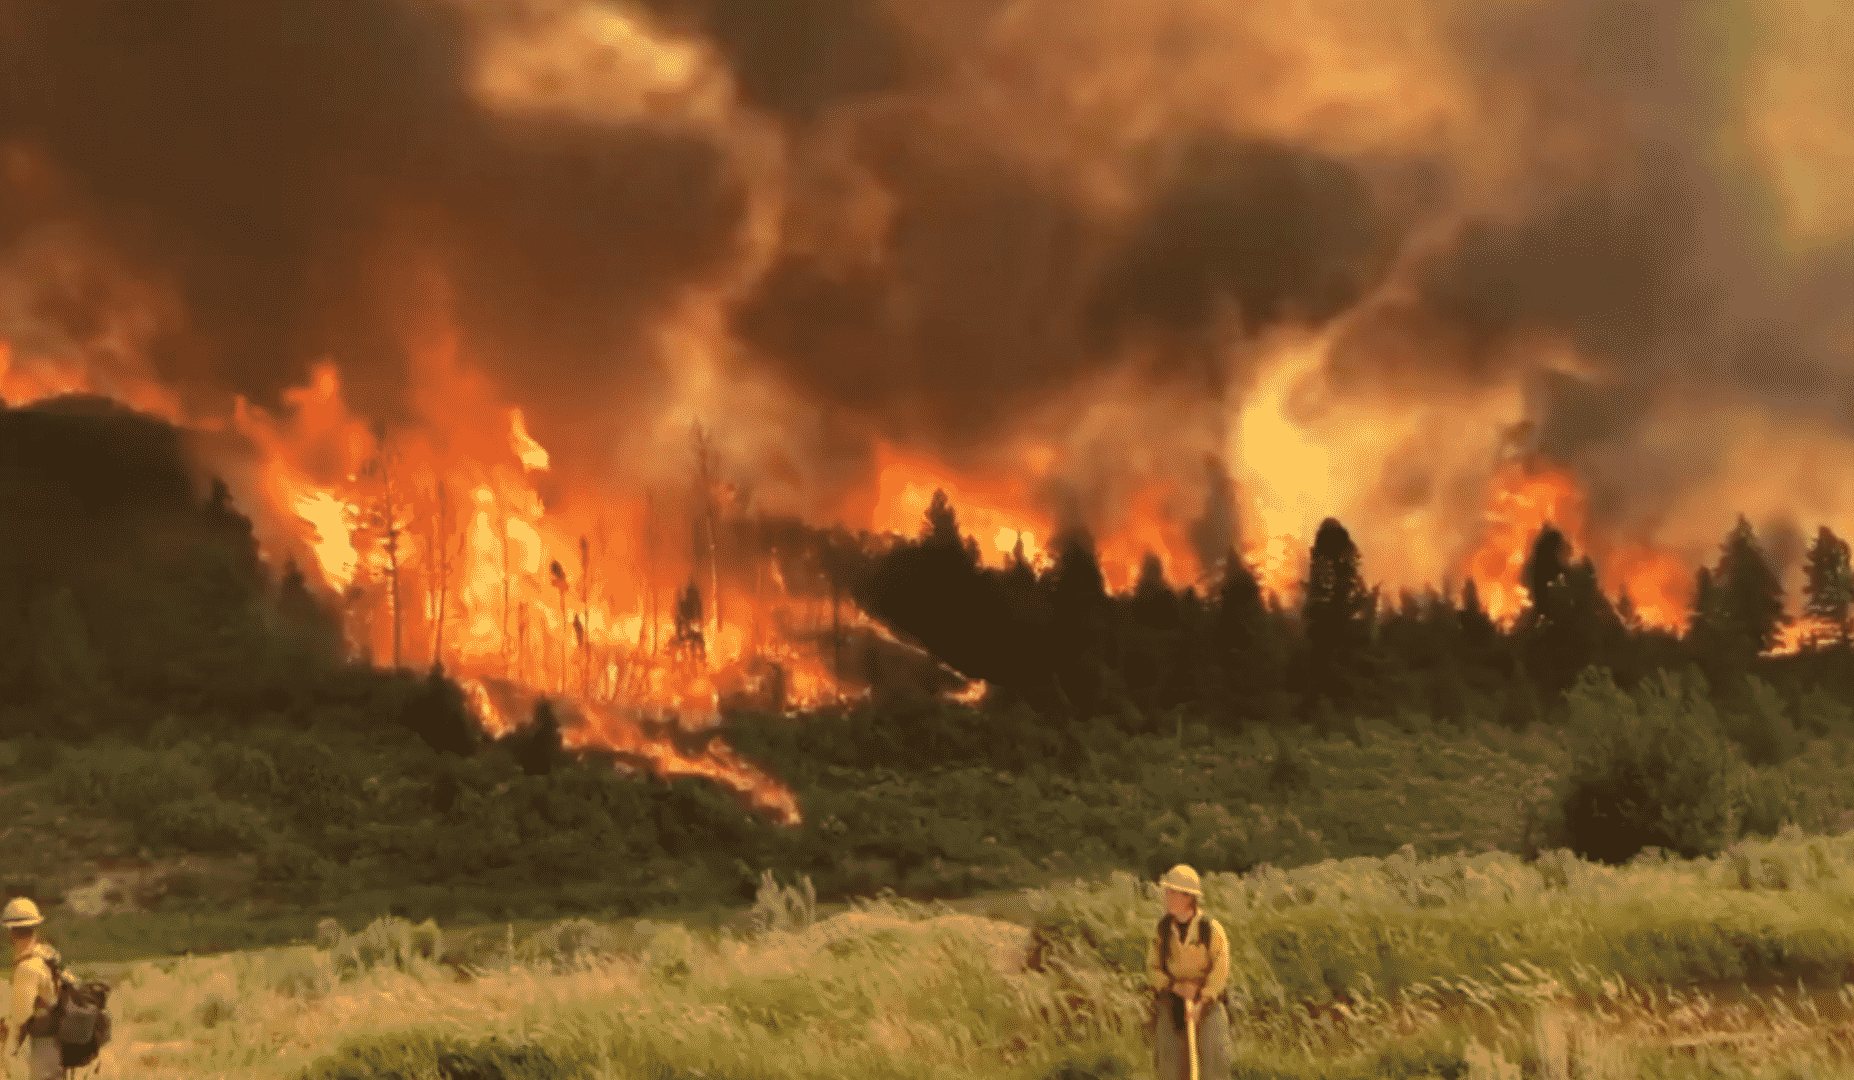 Colorado wildfire roundup: Fires burning across the state